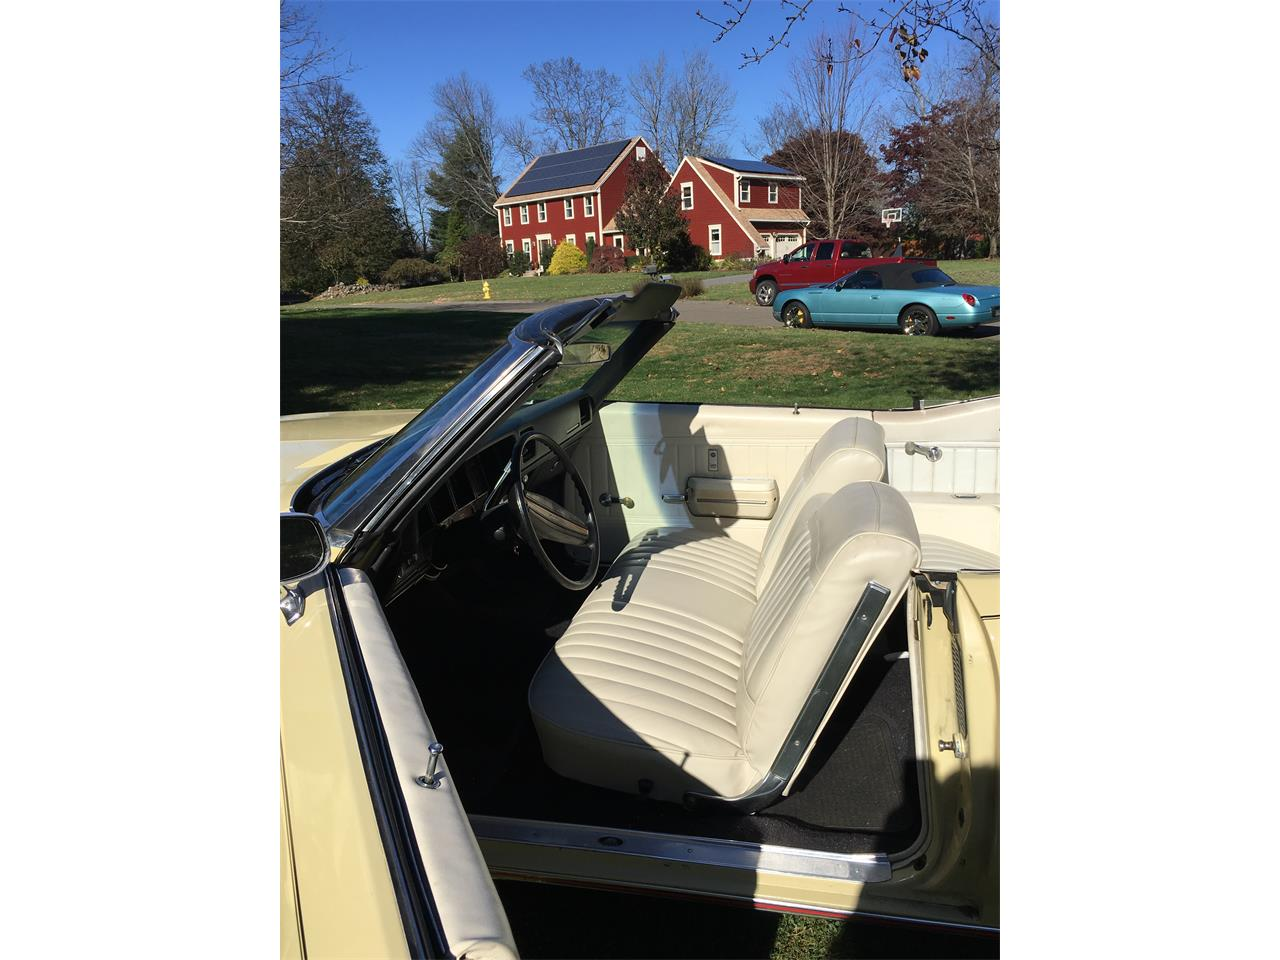 Large Picture of 1972 Buick Skylark located in Trumbull Connecticut - $19,000.00 - N1WN